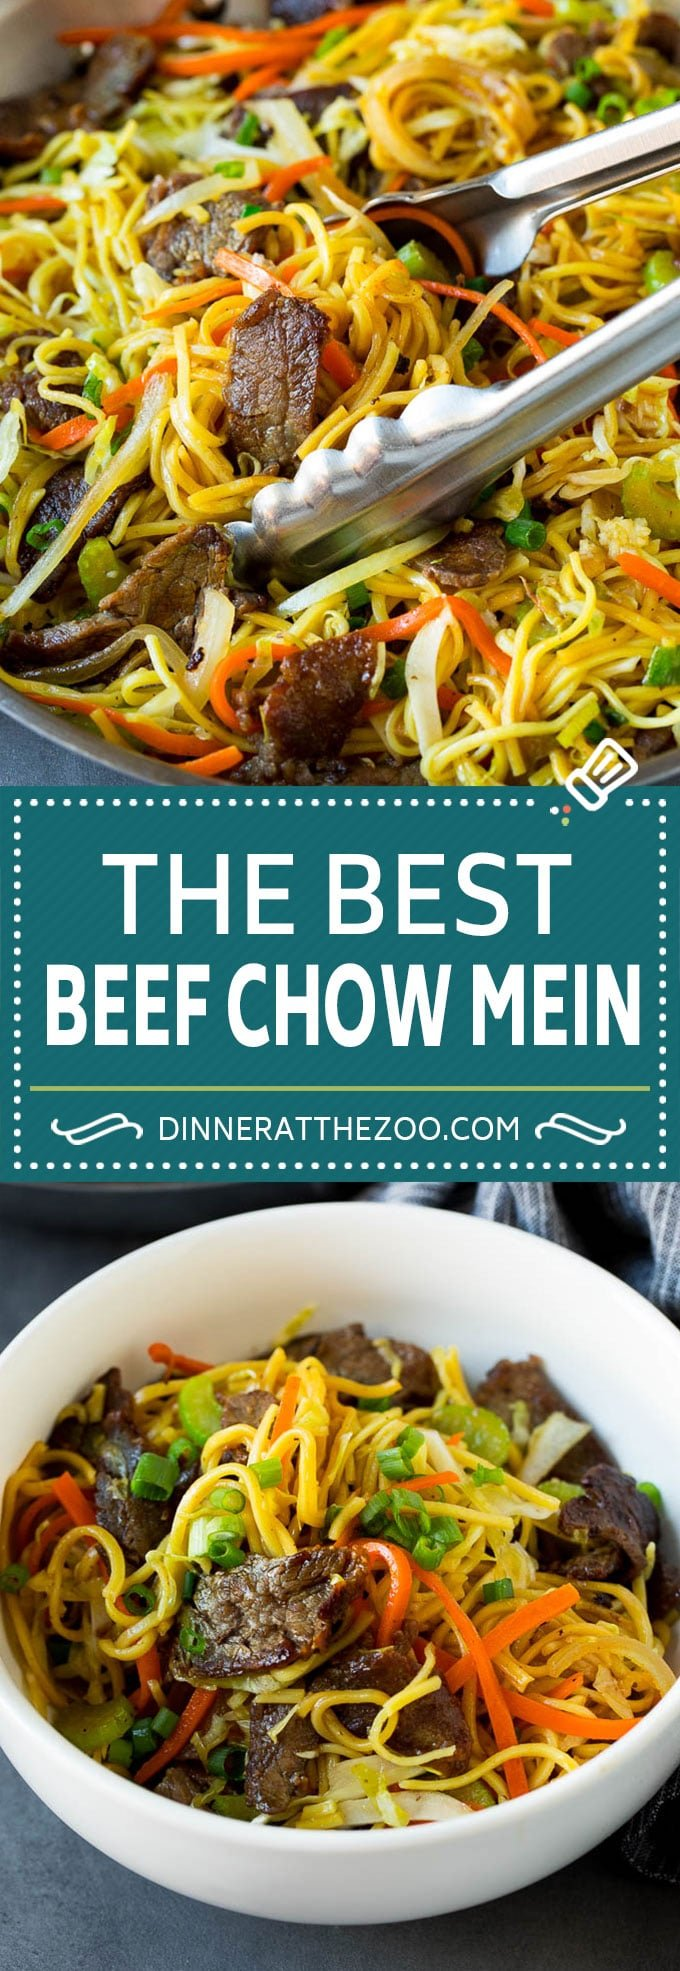 Beef Chow Mein #beef #noodles #dinner #dinneratthezoo